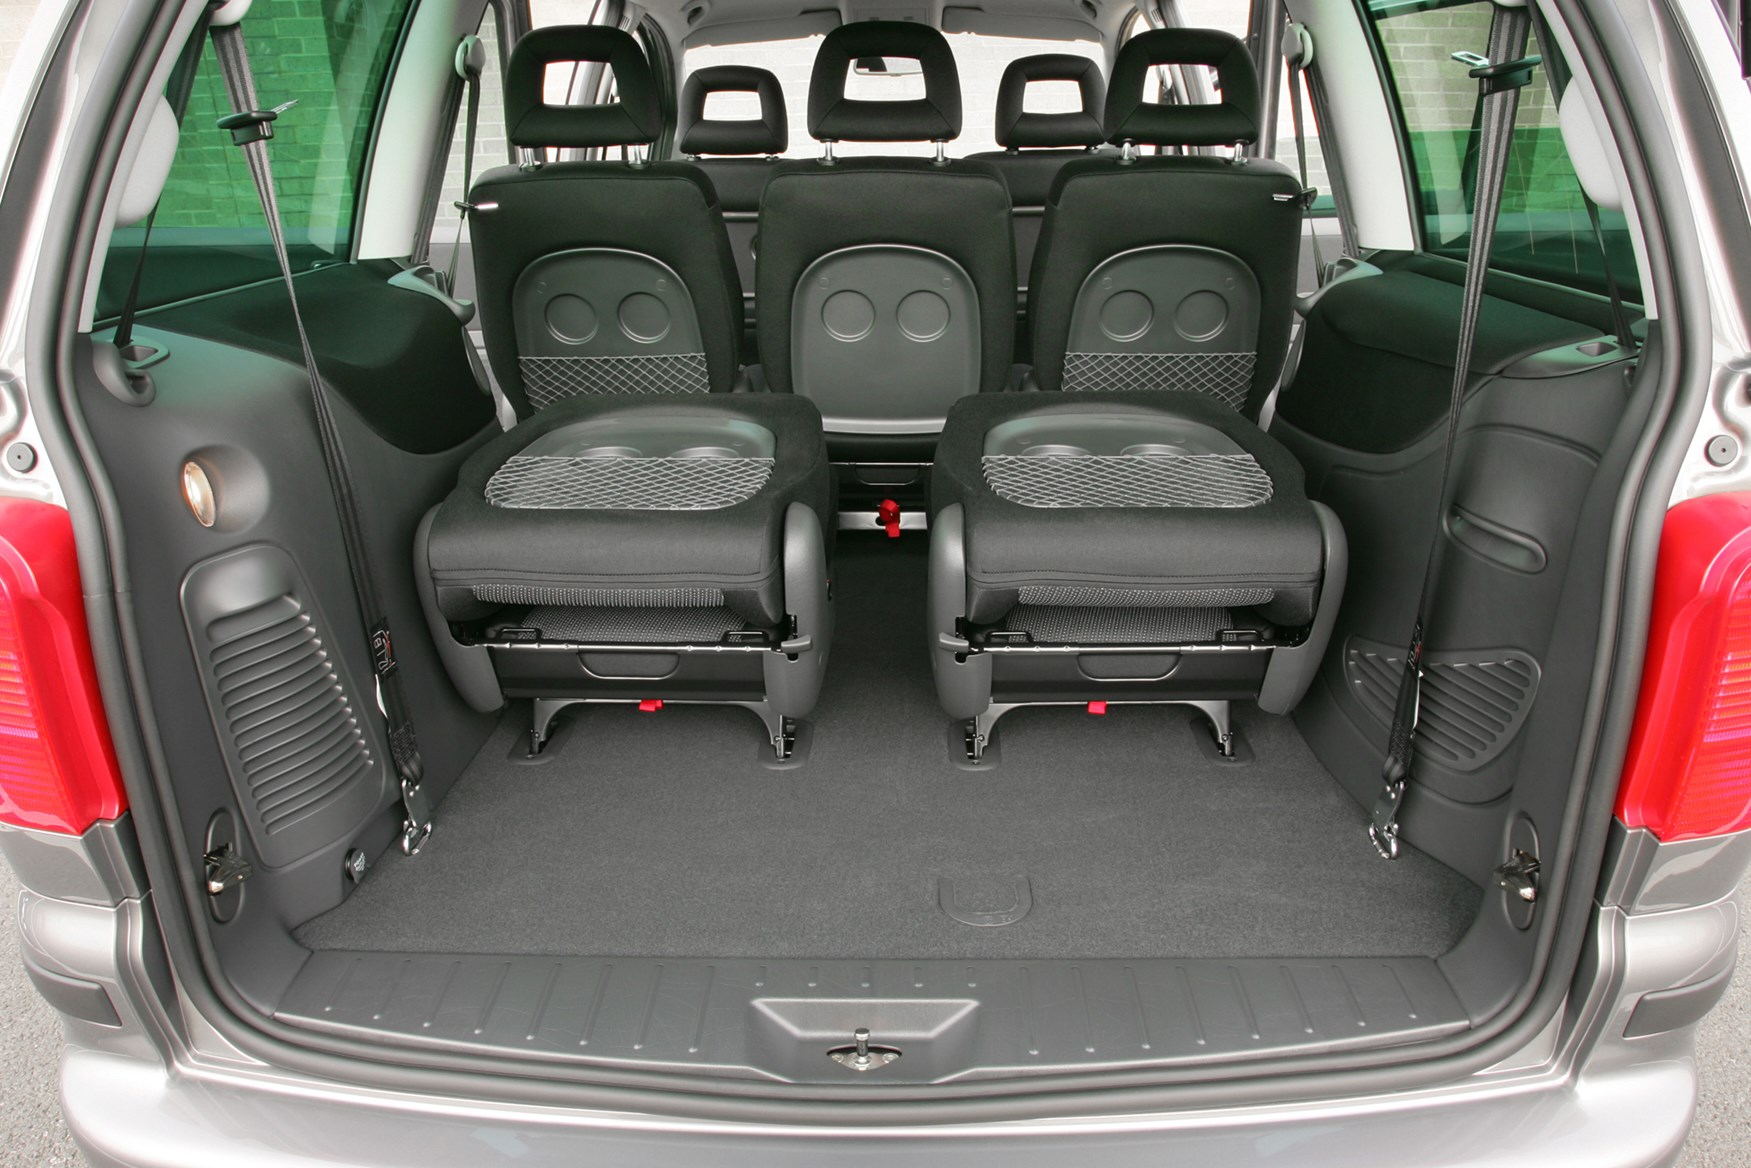 Seat Alhambra Estate Review 2000 2010 Parkers